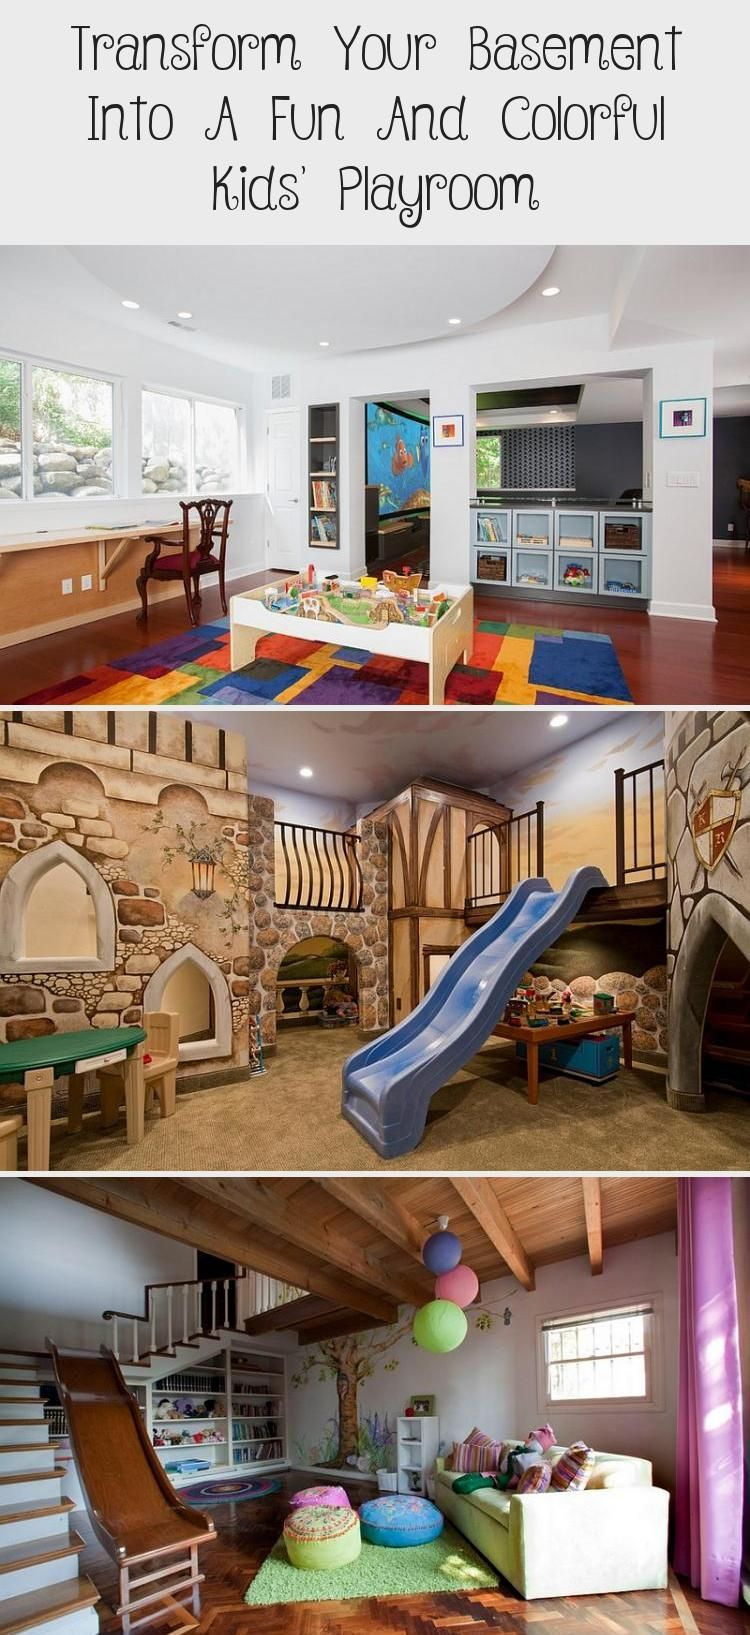 Photo of Transform Your Basement Into A Fun And Colorful Kids' Playroom